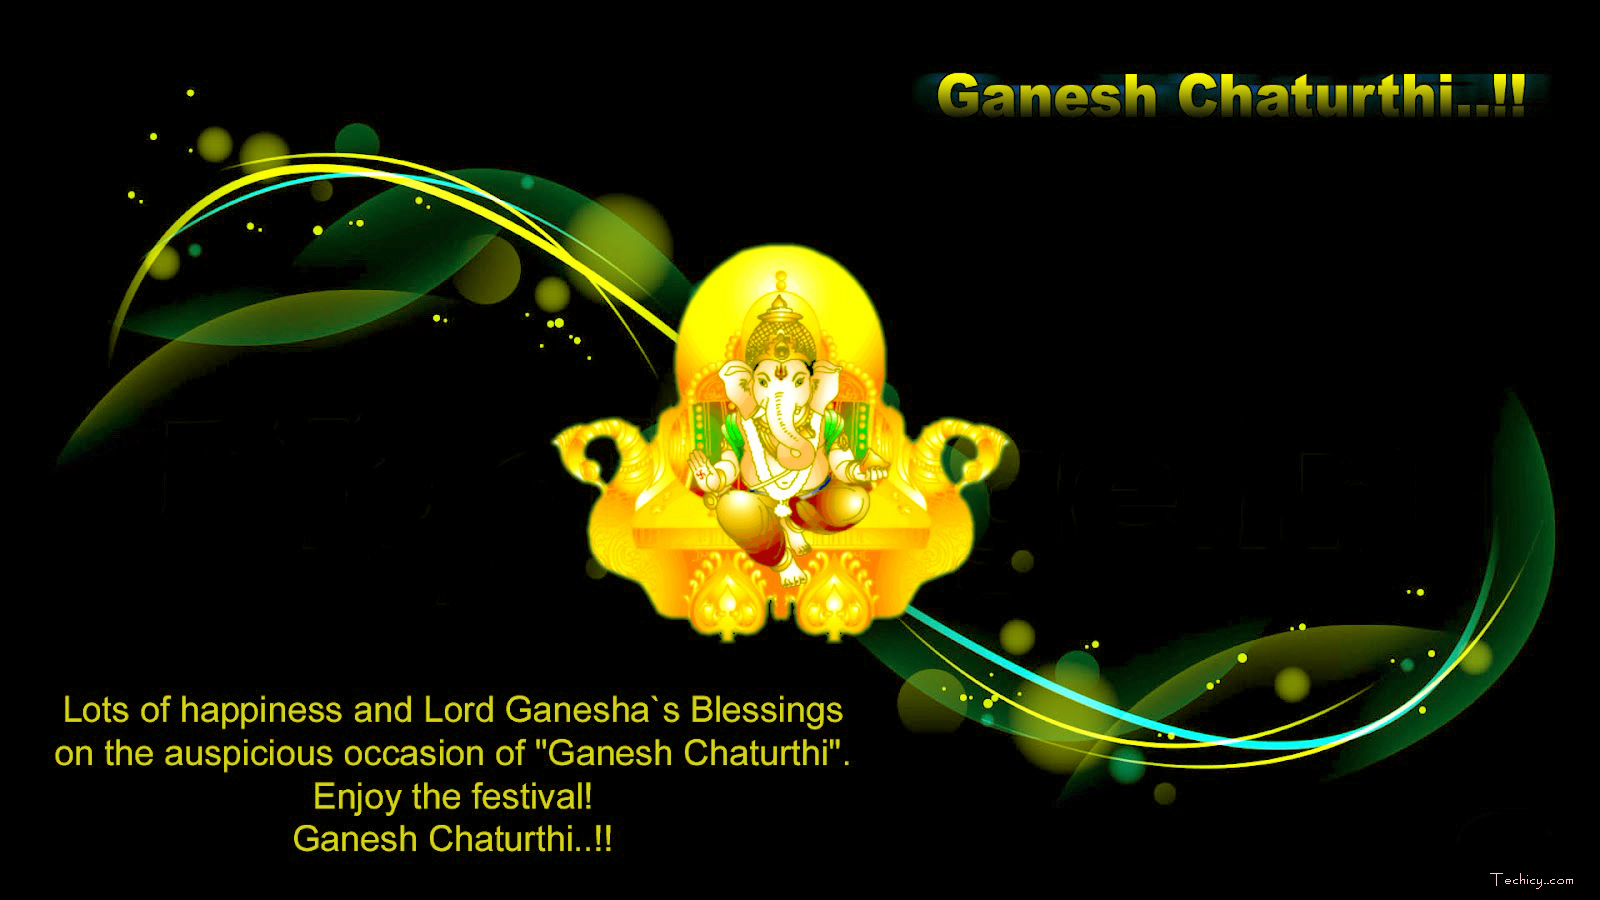 Ganesh Chaturthi 2018 Wallpaper for Desktop